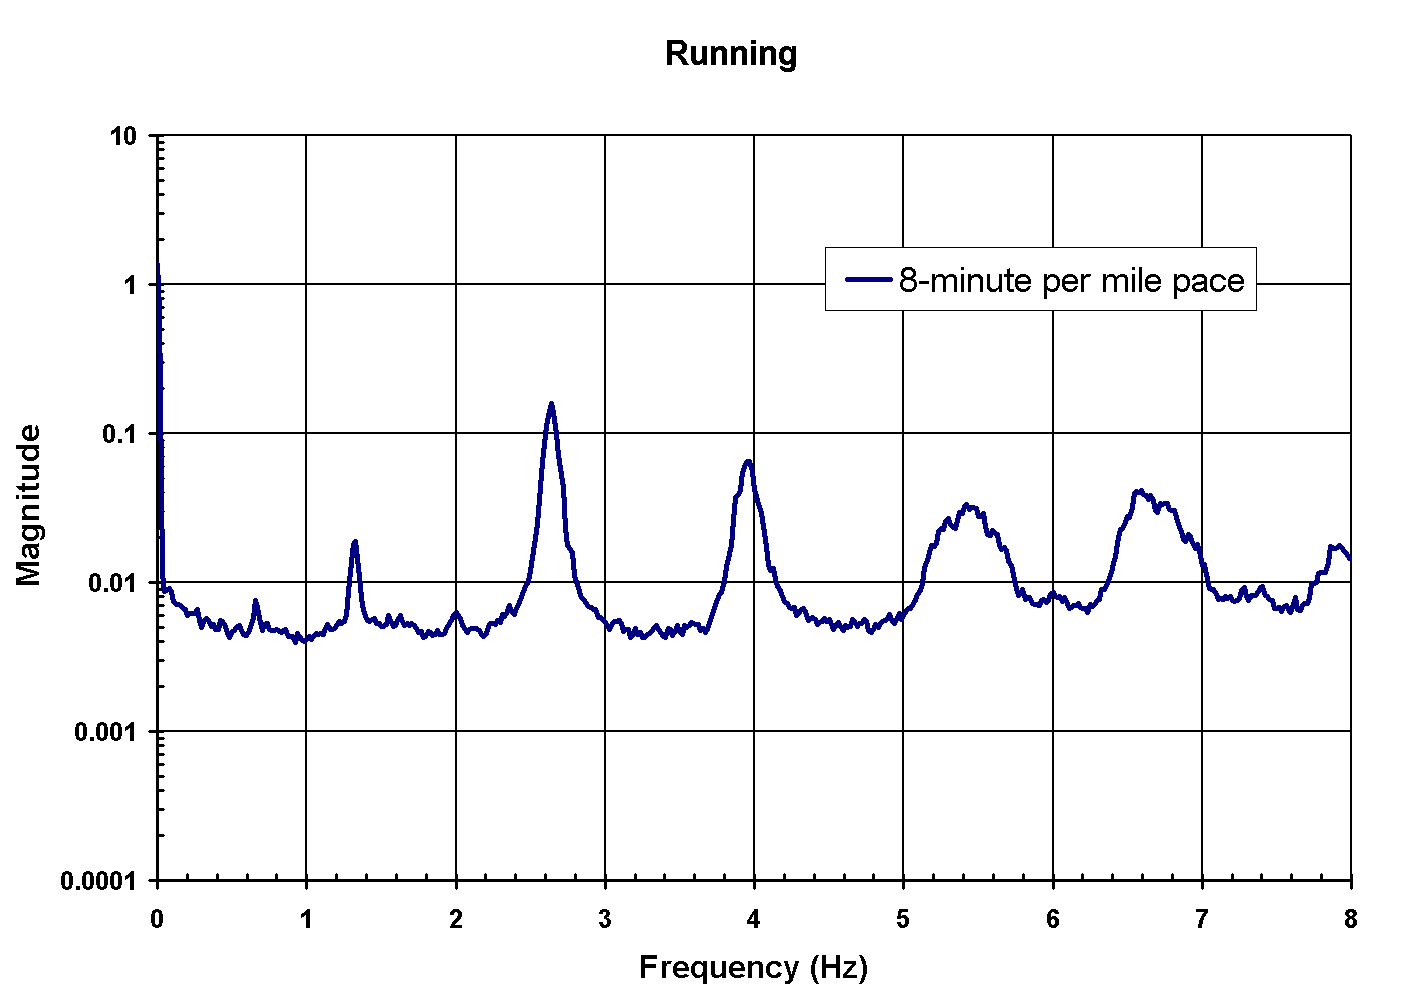 Running Spectral Characteristics